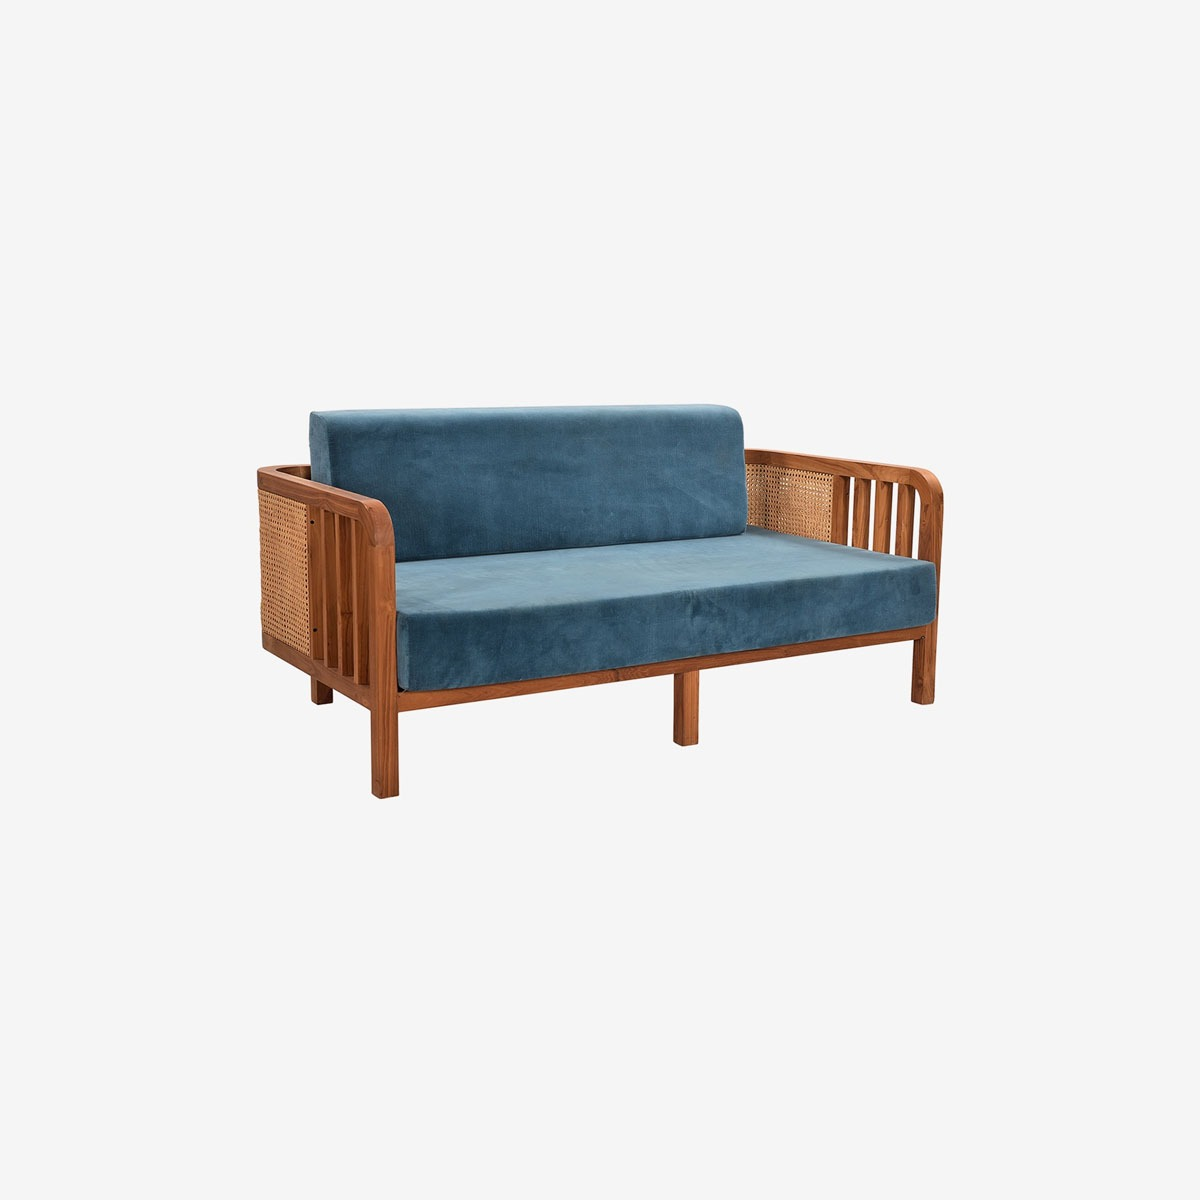 TWO SEATER SOFA (ANC-TSS-001)